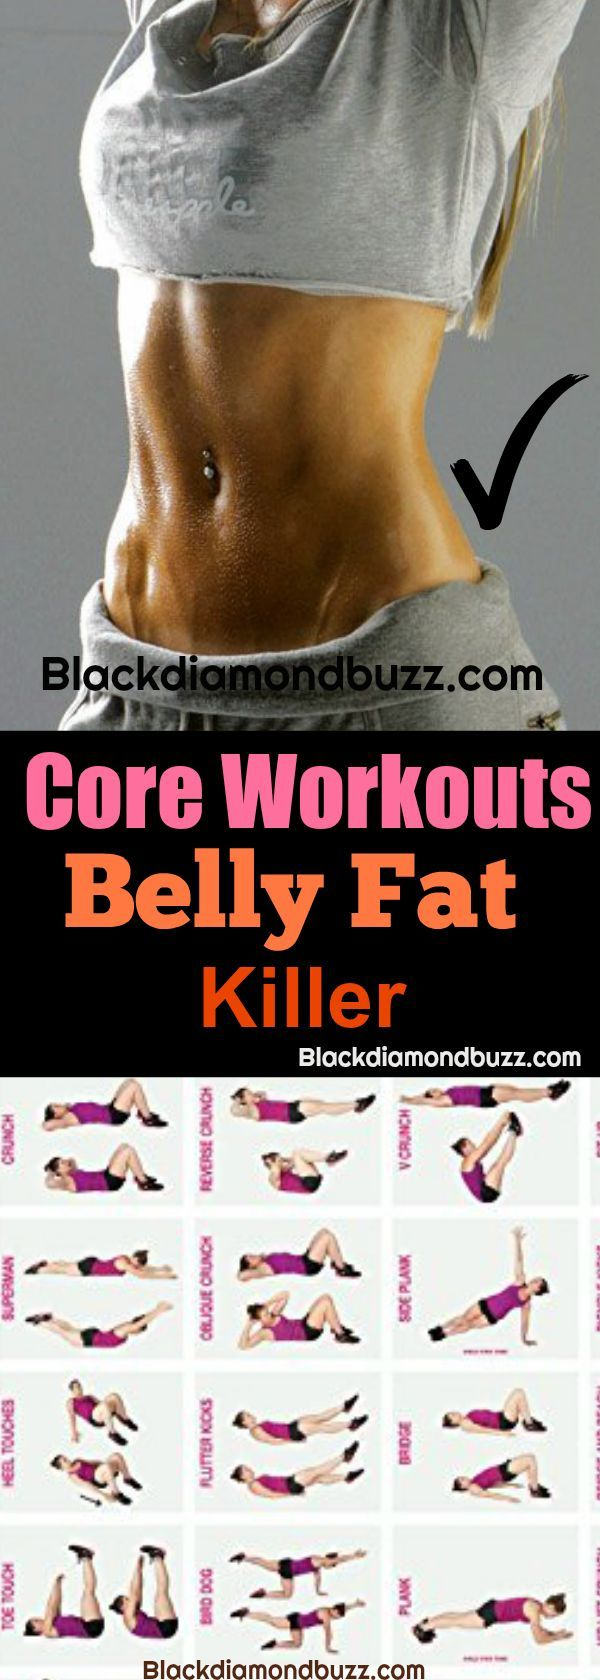 Core Workouts for Women at Home: Lose Weight, Get Six Pack, Strenghten your Abs and Get Flat Stomach Fast. It is the best ab wrkouts for beginner too. Try this!https://www.blackdiamondbuzz.com/core-exercises-for-women/ #coreworkout #abworkout #flatstomach #exerciseforwomen